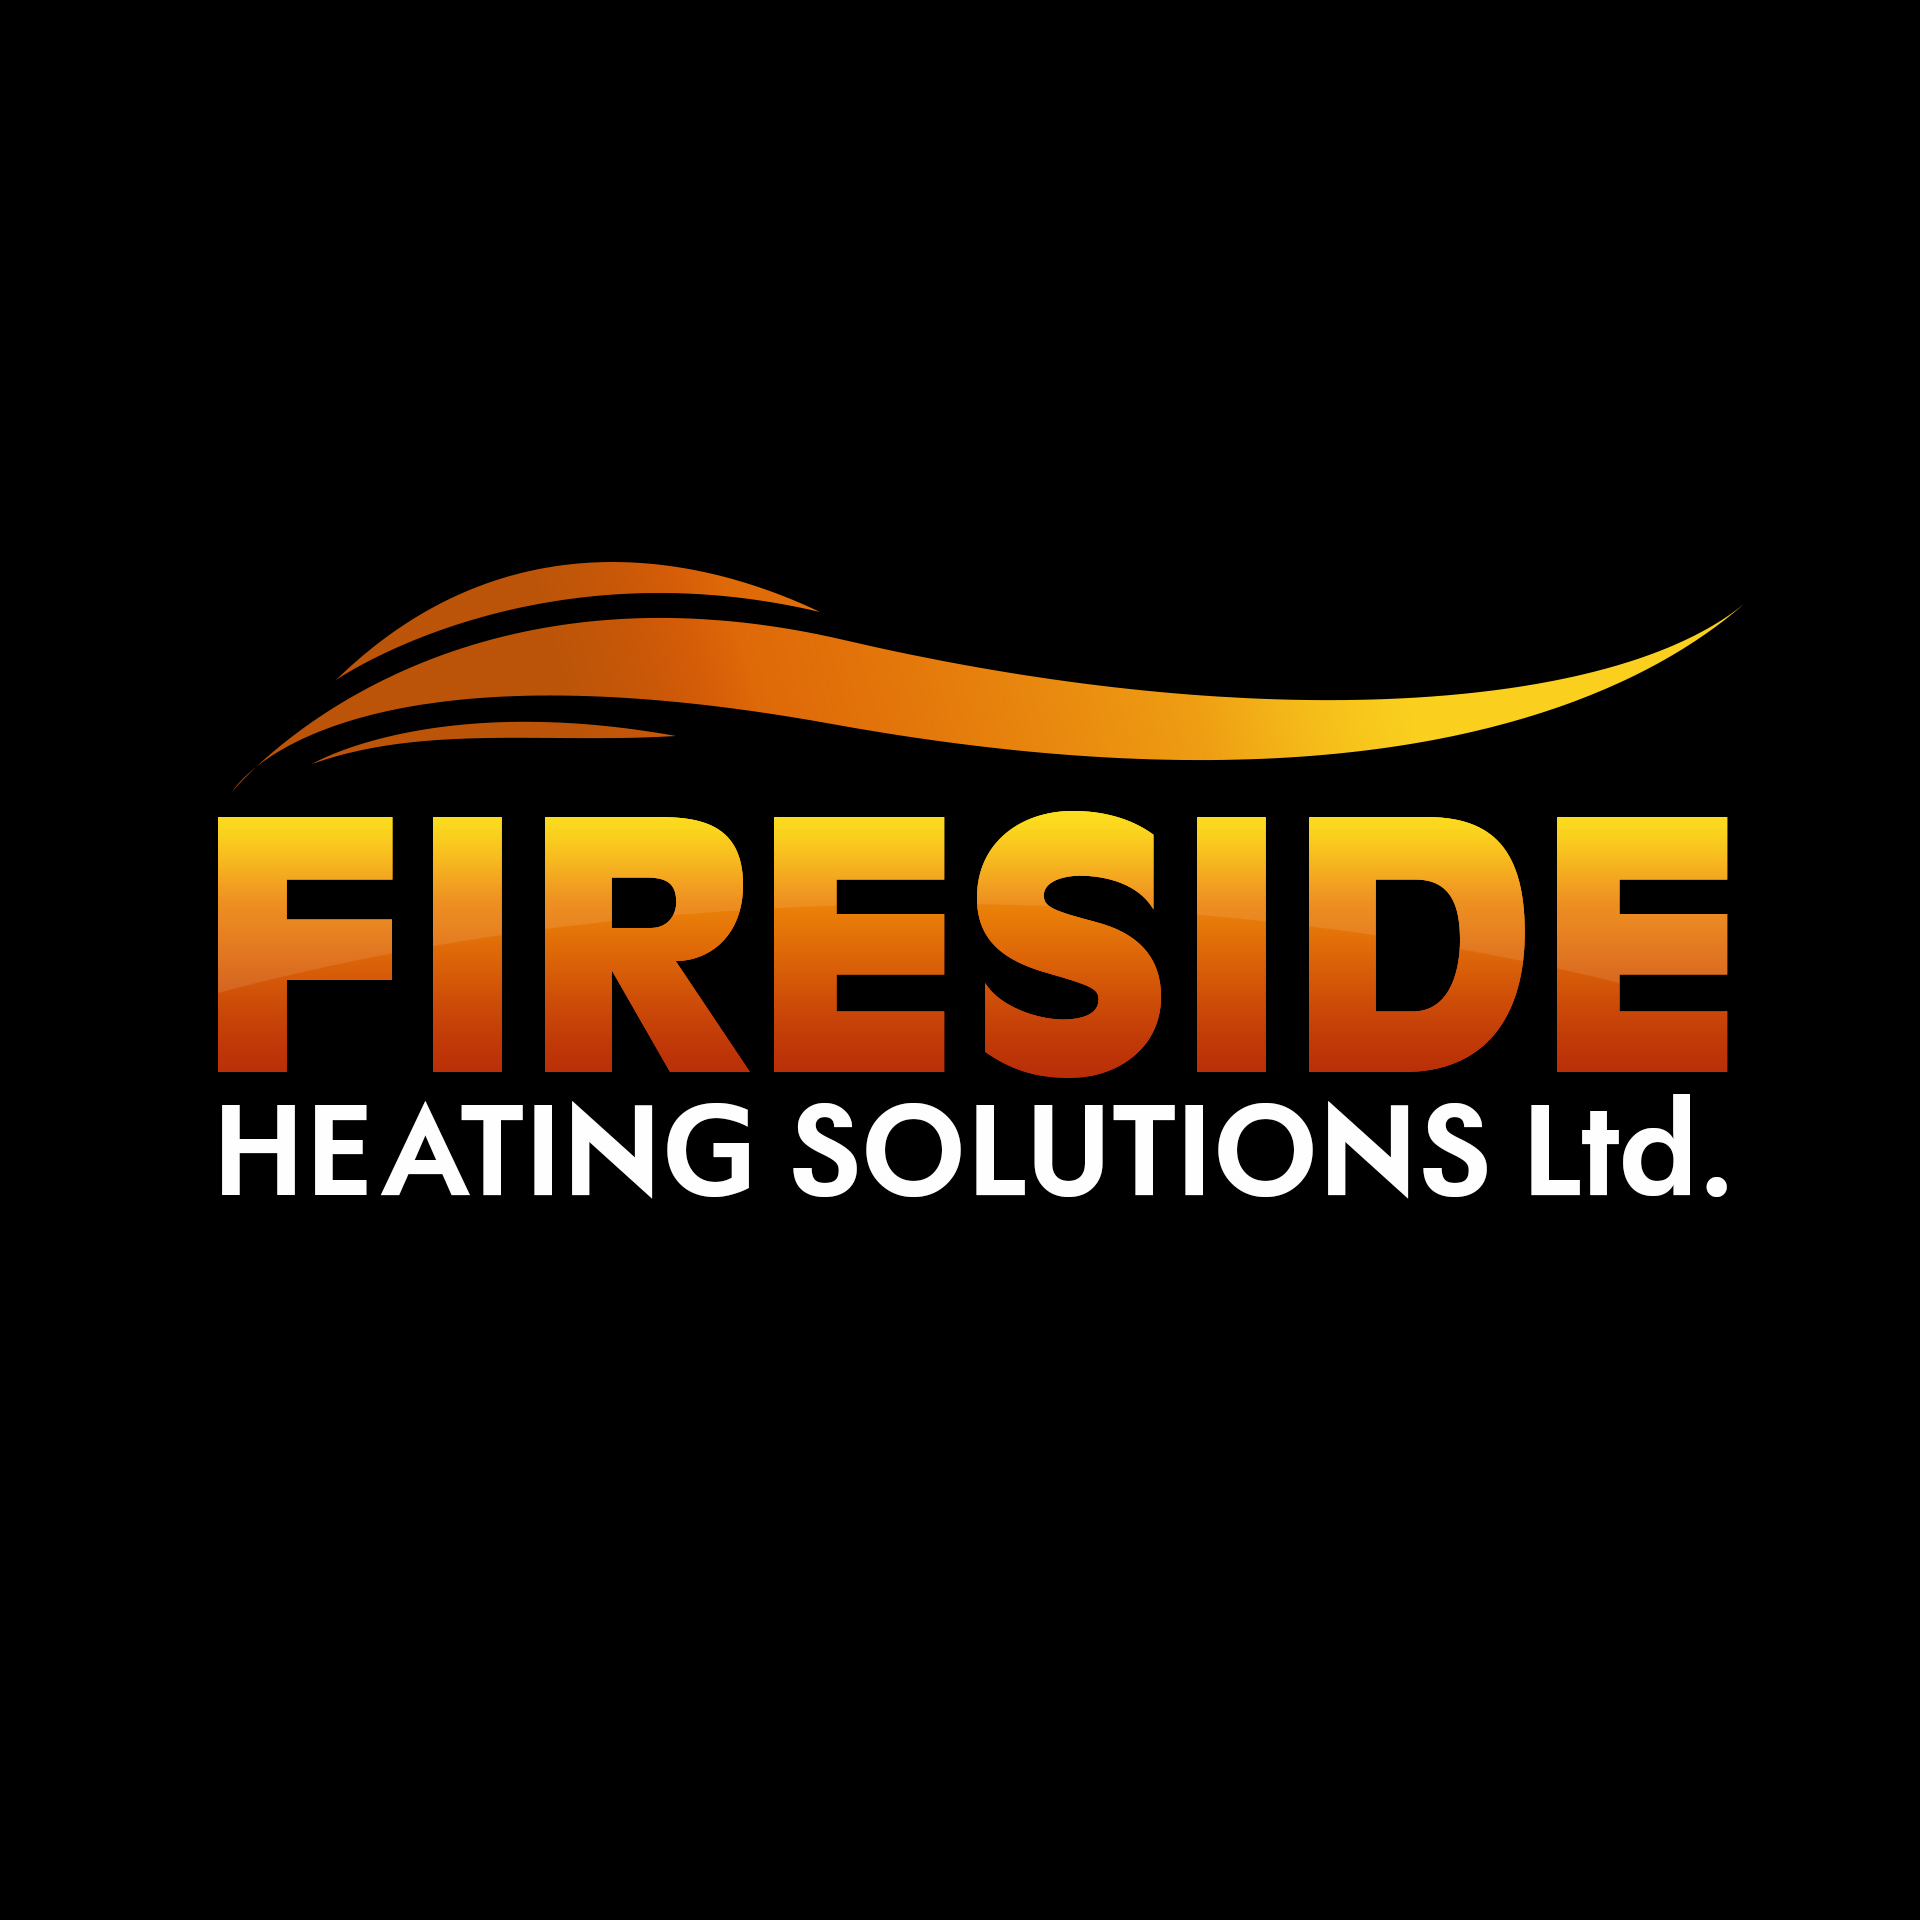 Logo Design by chAnDOS - Entry No. 149 in the Logo Design Contest Creative Logo Design for Fireside Heating Solutions Ltd..